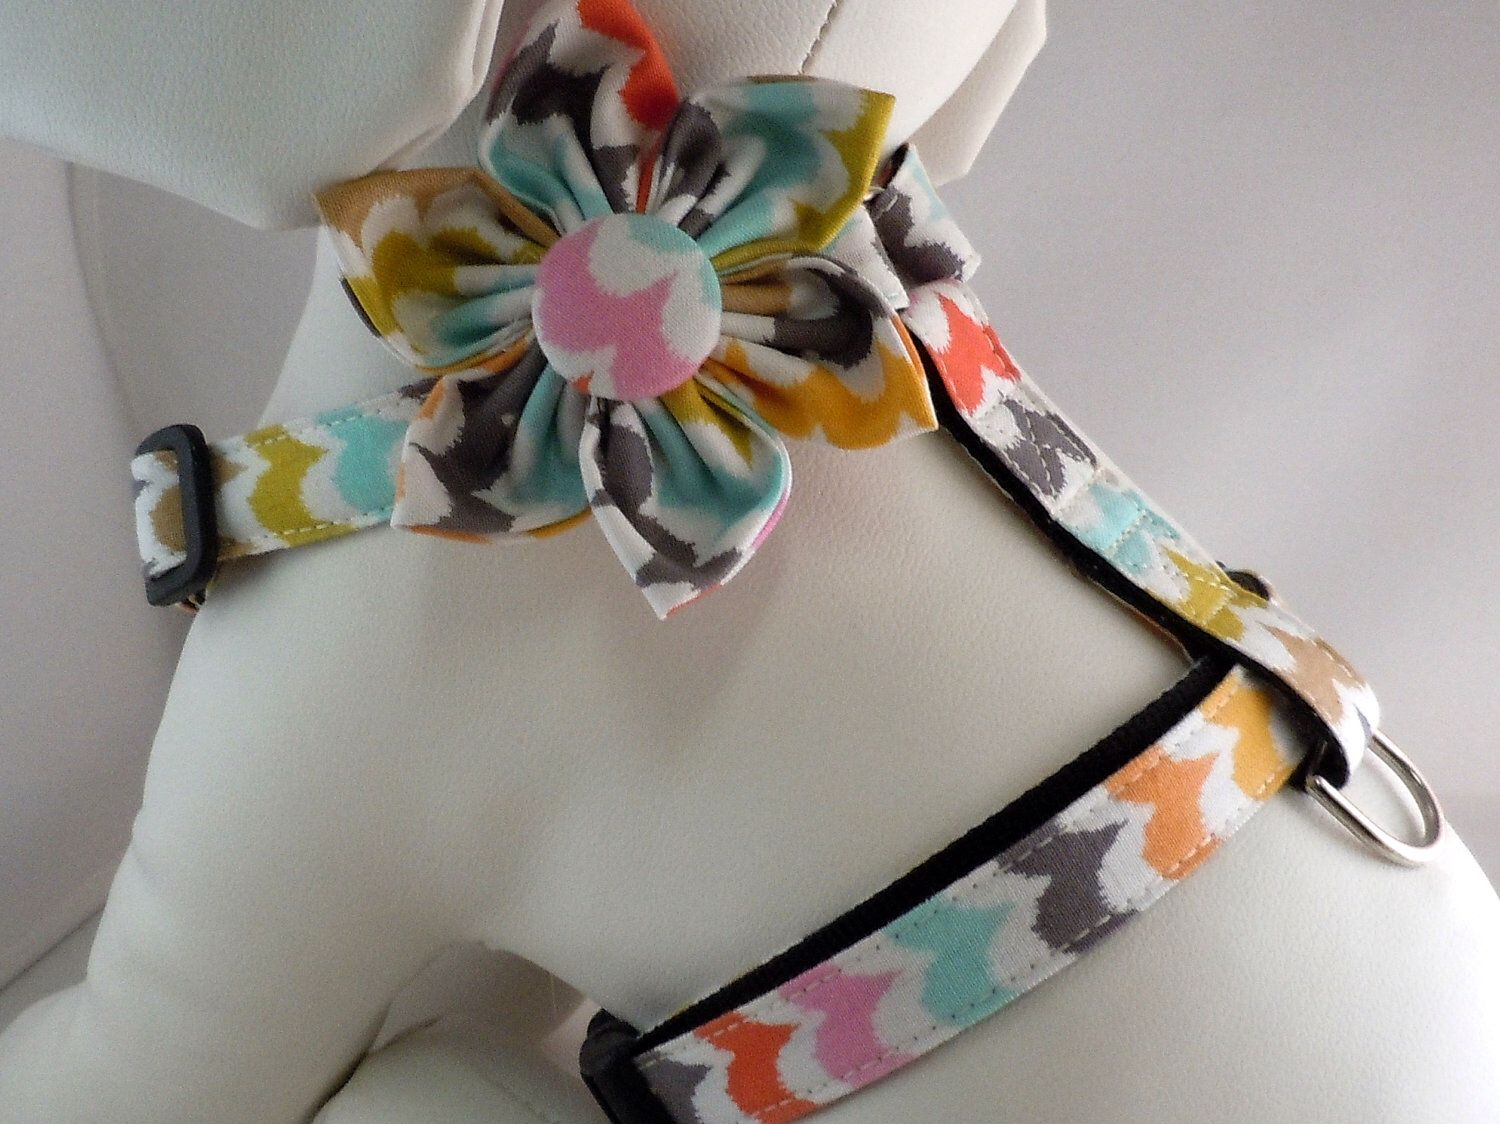 Dog Harness with Flower or Bow Tie Set - Traditional or Step-In - Pick Any Fabric in Shop by LearnedStitchworks on Etsy https://www.etsy.com/listing/74198000/dog-harness-with-flower-or-bow-tie-set